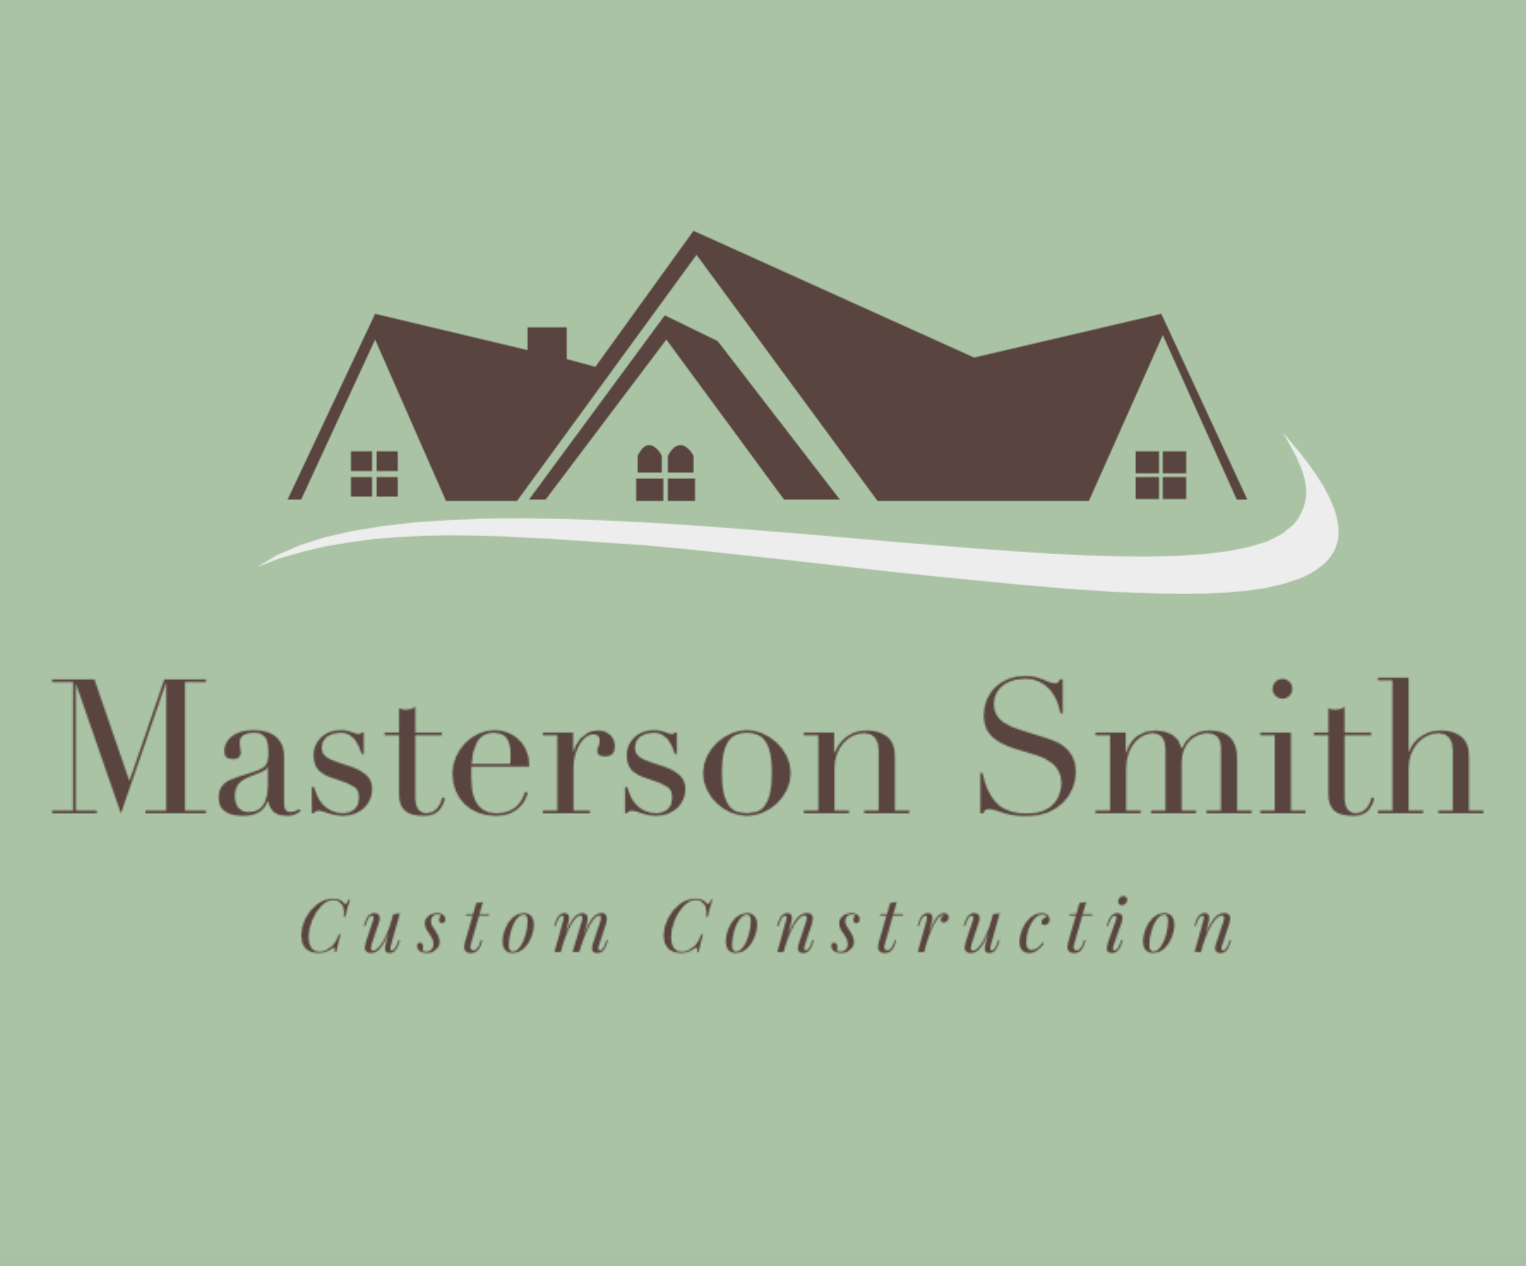 Logo made with DesignEvo - Masterson Smith